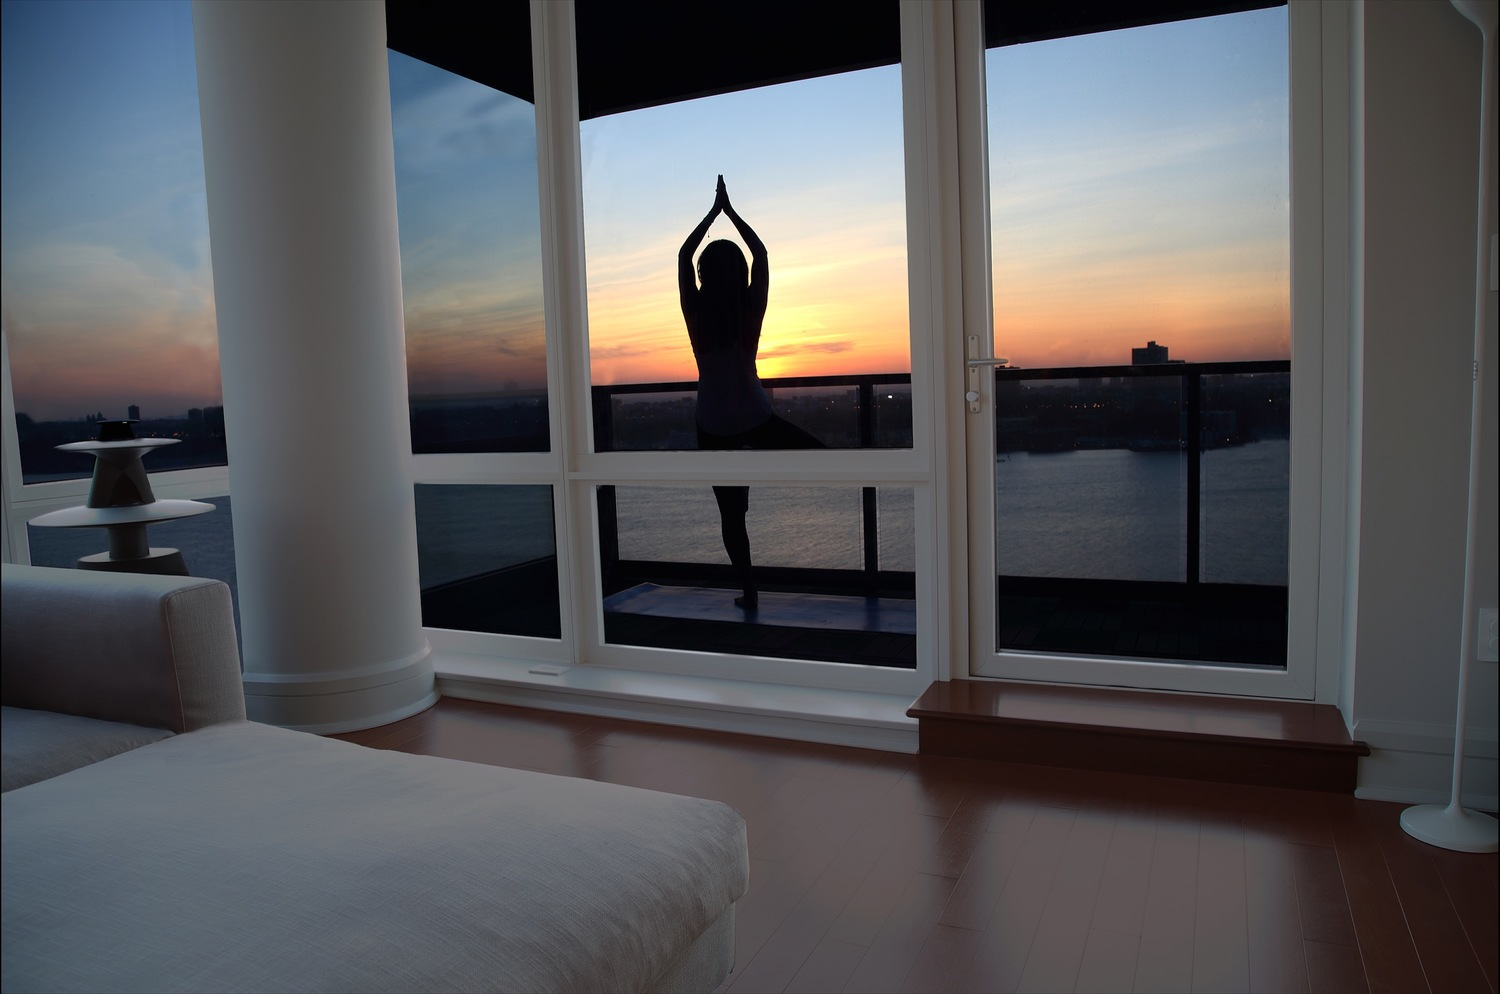 What are the yoga exercises to make your eyes healthy? 1